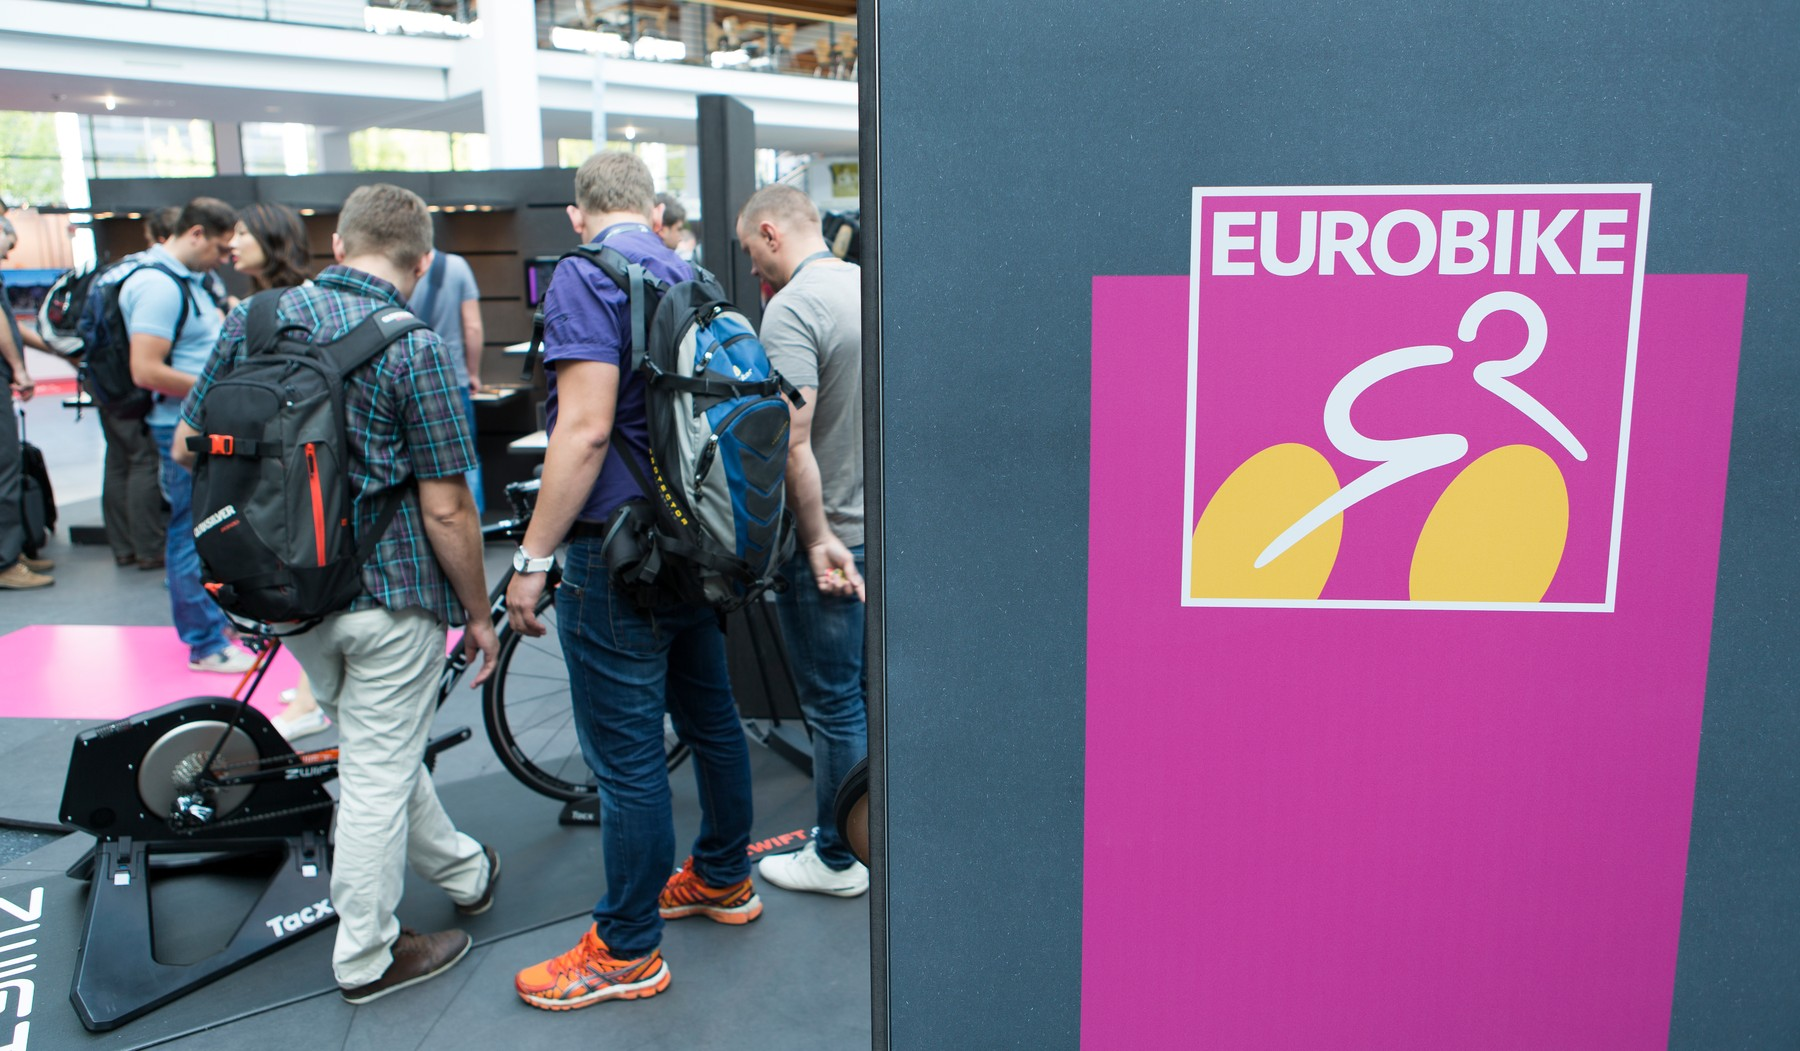 Visitors of the Eurobike fair stand in a fair hall in Friedrichshafen,Germany, 31 August 2016., Image: 298409382, License: Rights-managed, Restrictions: , Model Release: no, Credit line: Profimedia, TEMP EPA